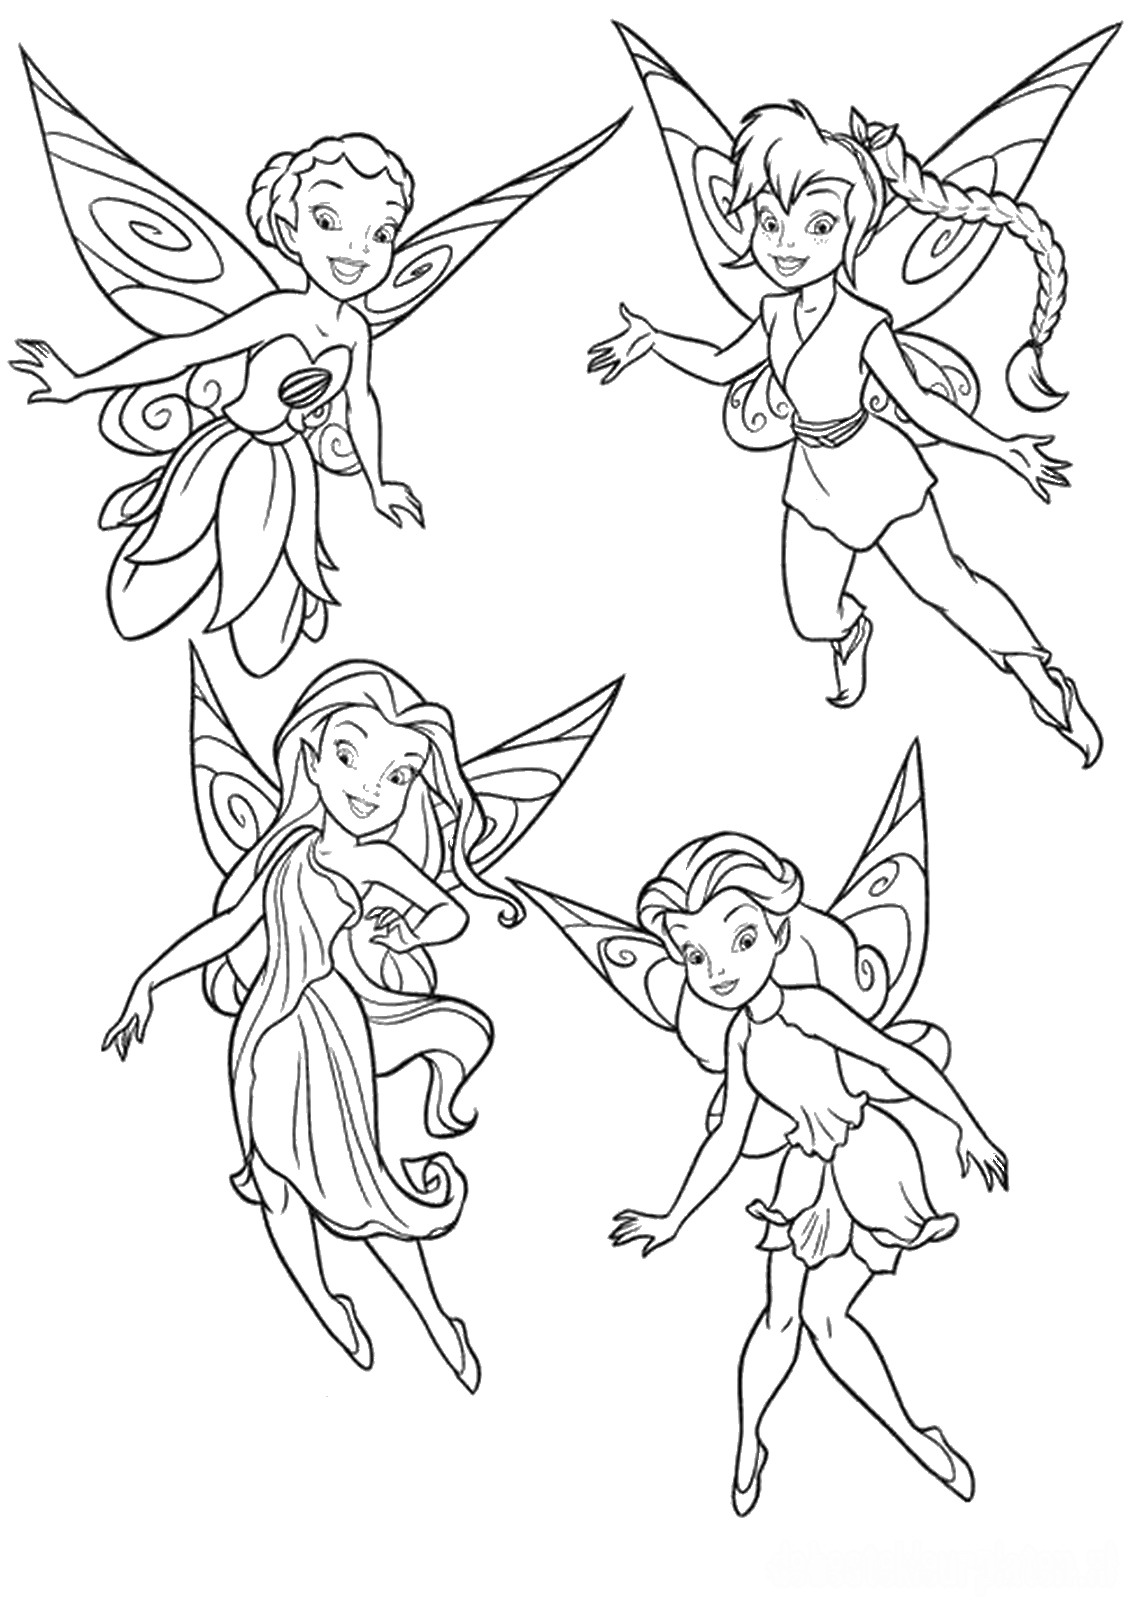 tinkerbell coloring sheets tinkerbell coloring pages coloring sheets tinkerbell